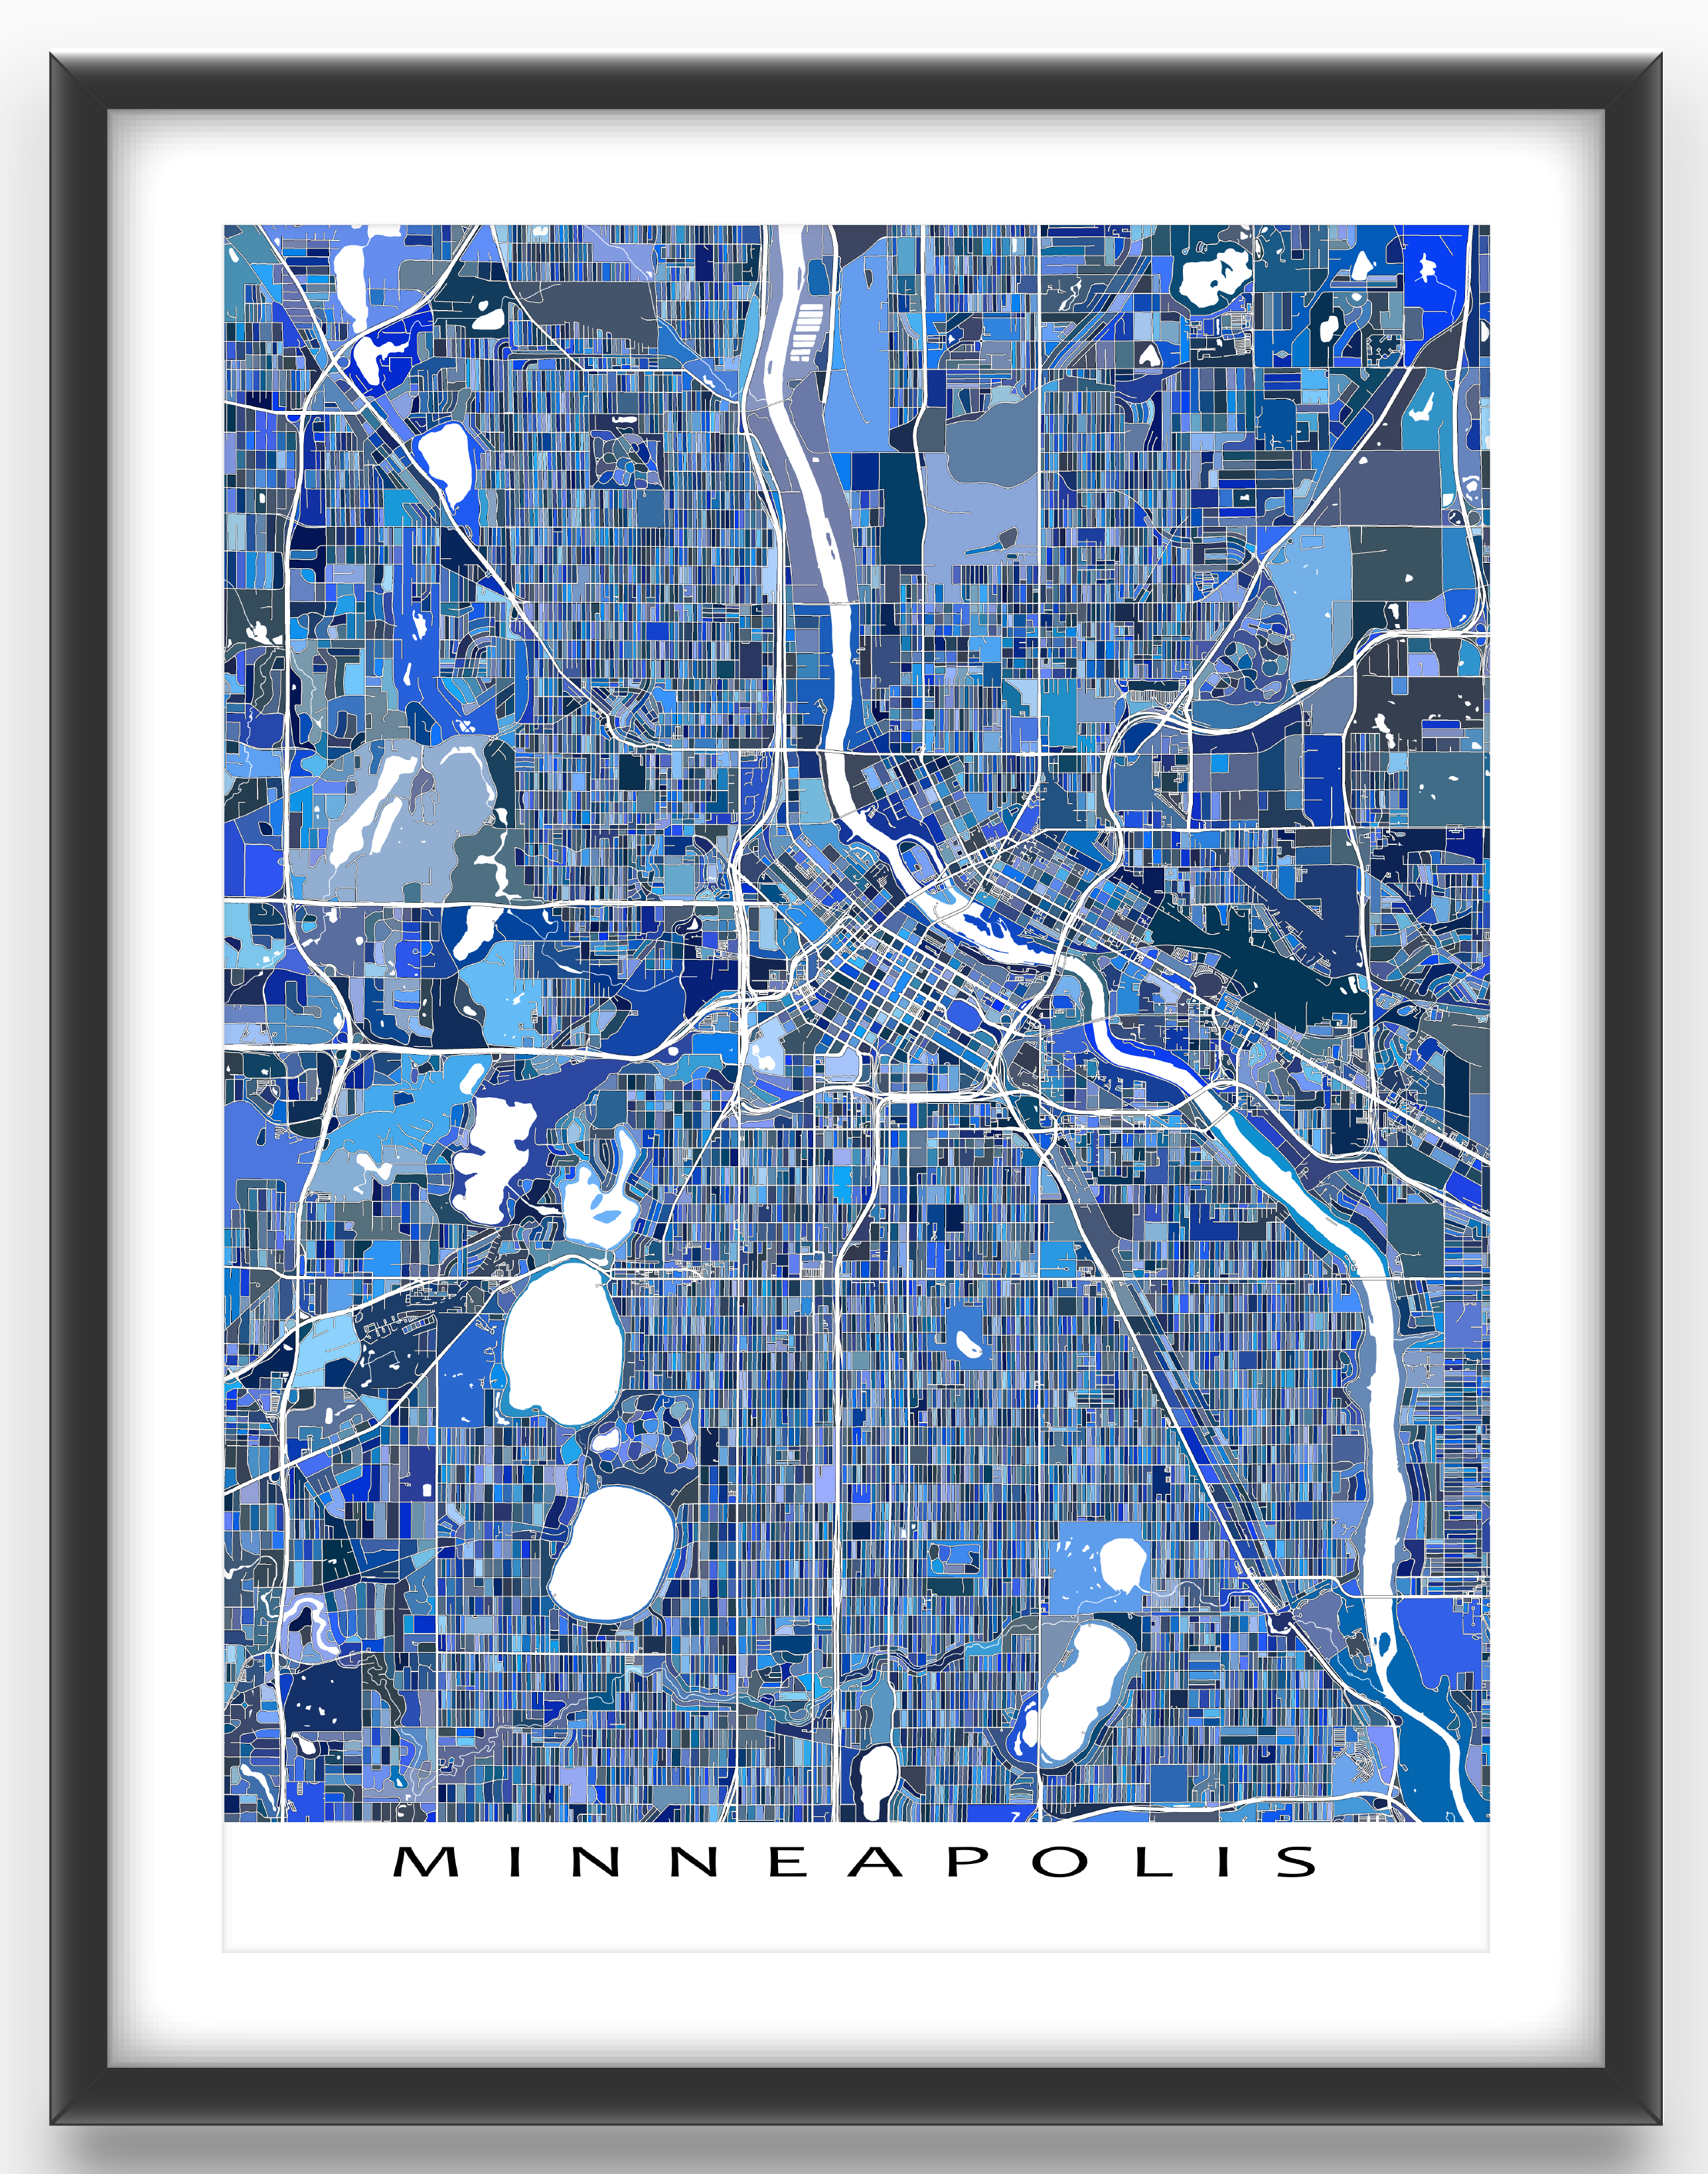 Color printing depaul - Color Printing Madison Wi A Minneapolis Map Art Print Featuring The City Of Minneapolis Minnesota